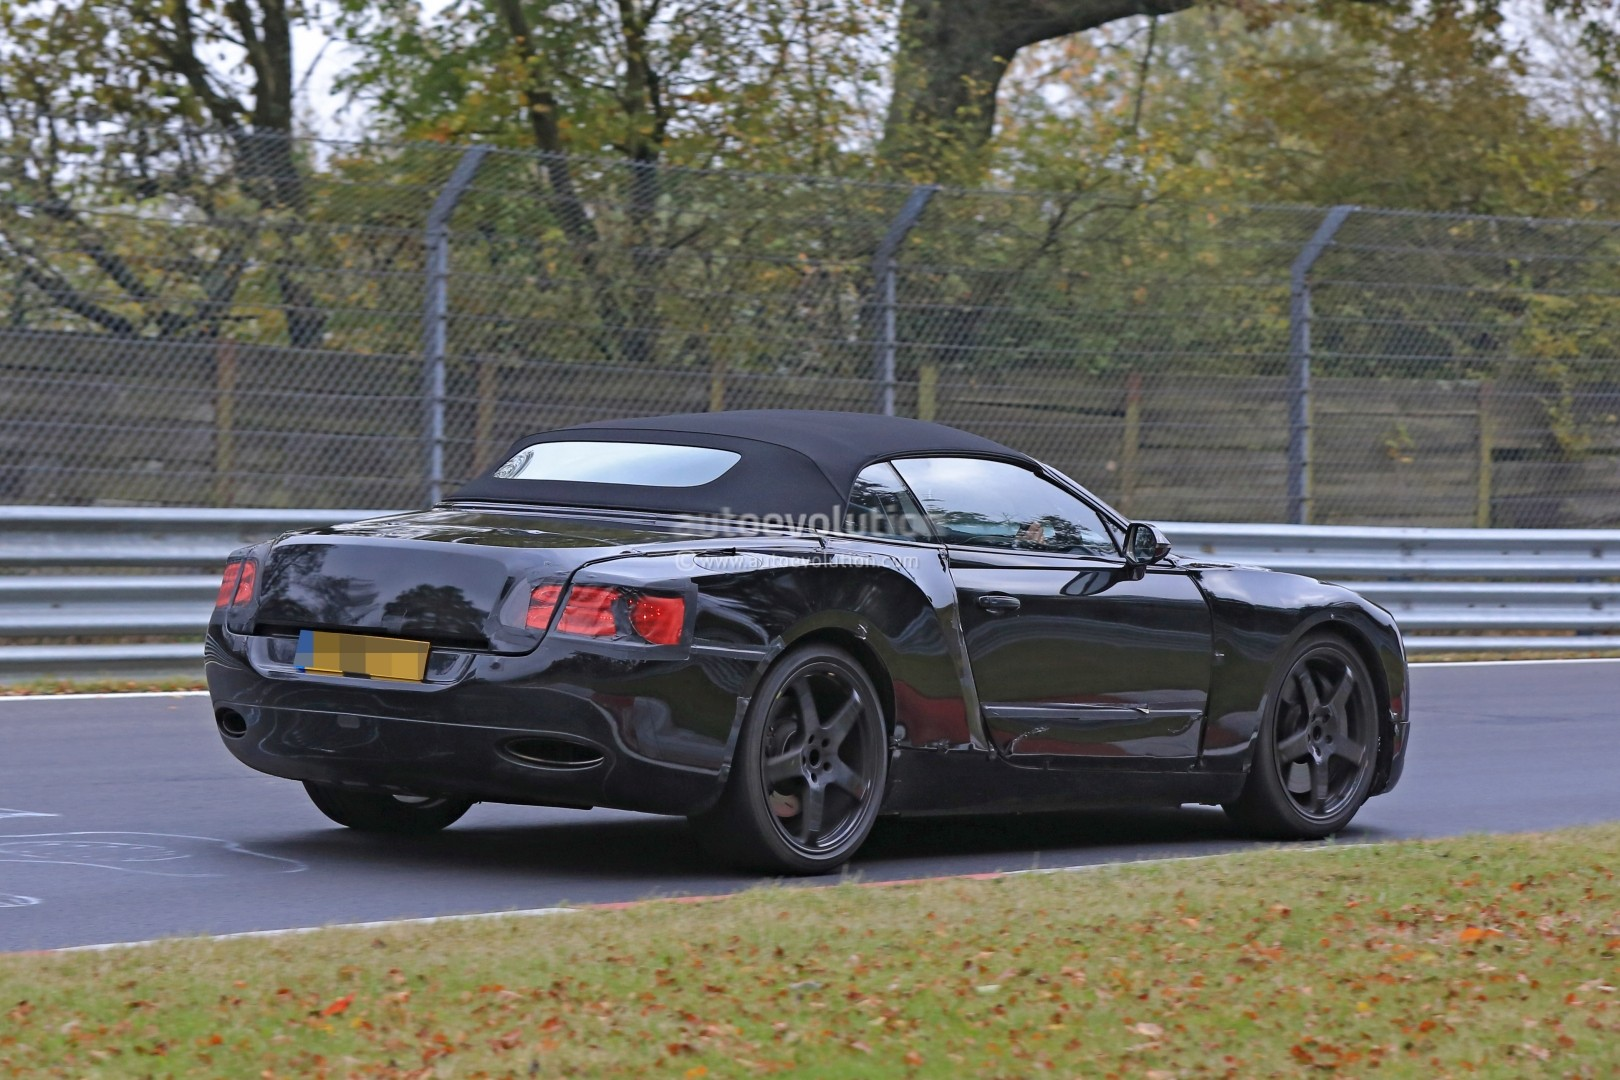 2017 - [Bentley] Continental GT - Page 2 2018-bentley-continental-gt-convertible-shows-wide-stance-on-nurburgring_14